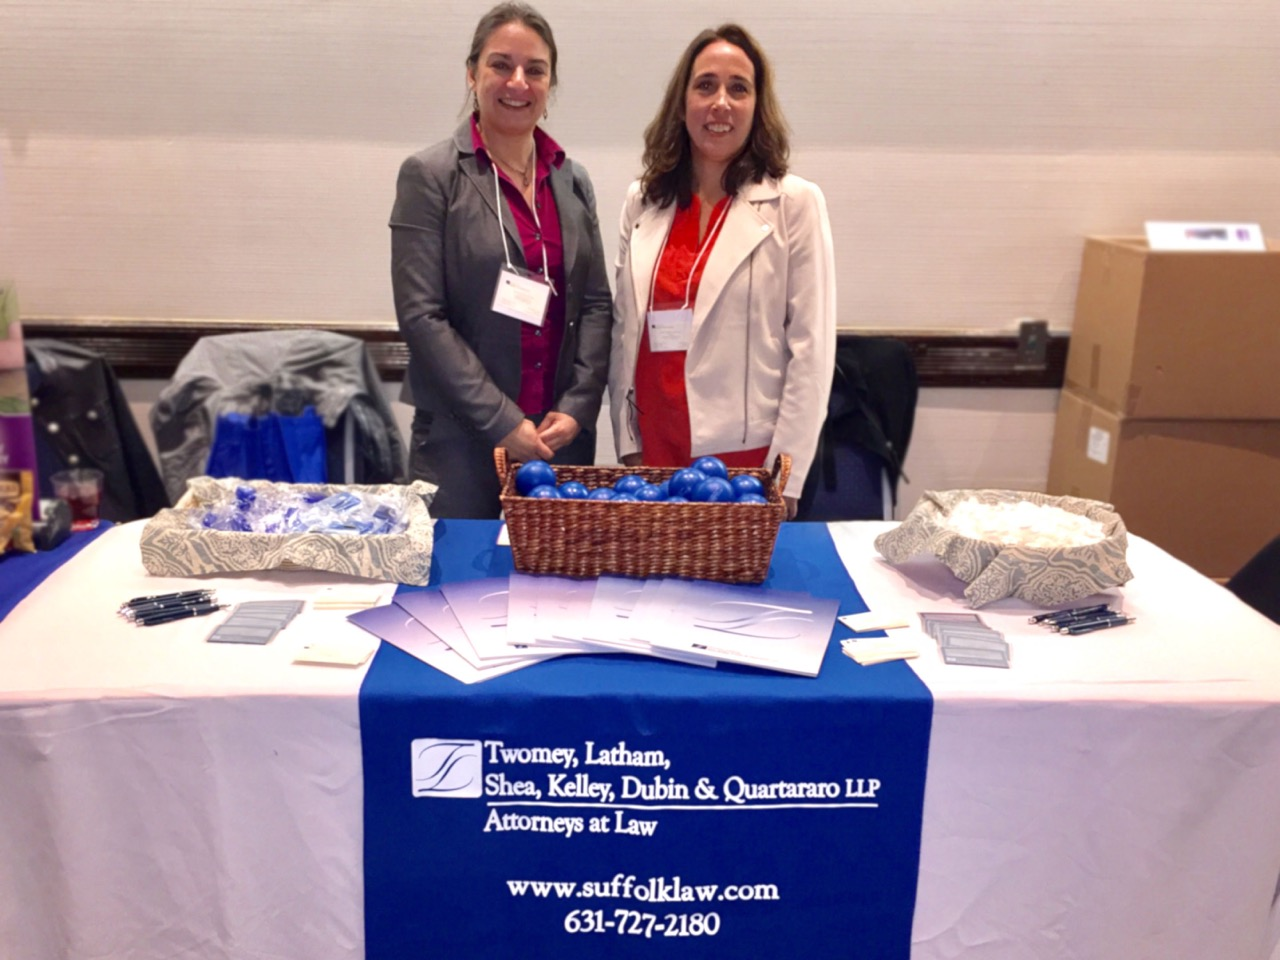 partner attorneys Anne Marie Goodale and Laura Dunathan in front of Twomey Latham booth table